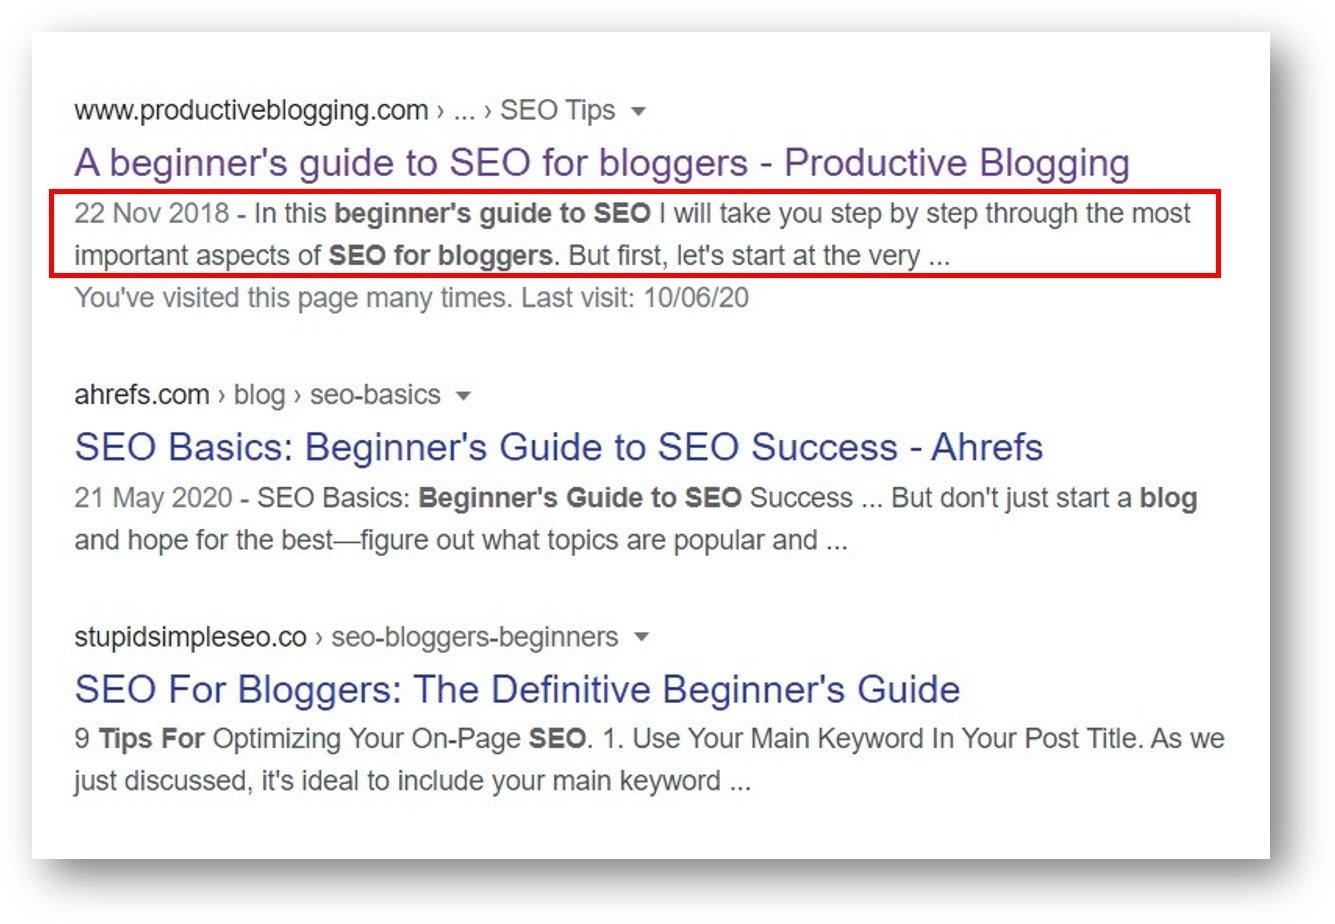 Example of how a meta description appears in Google search results as a snippet of text underneath the title